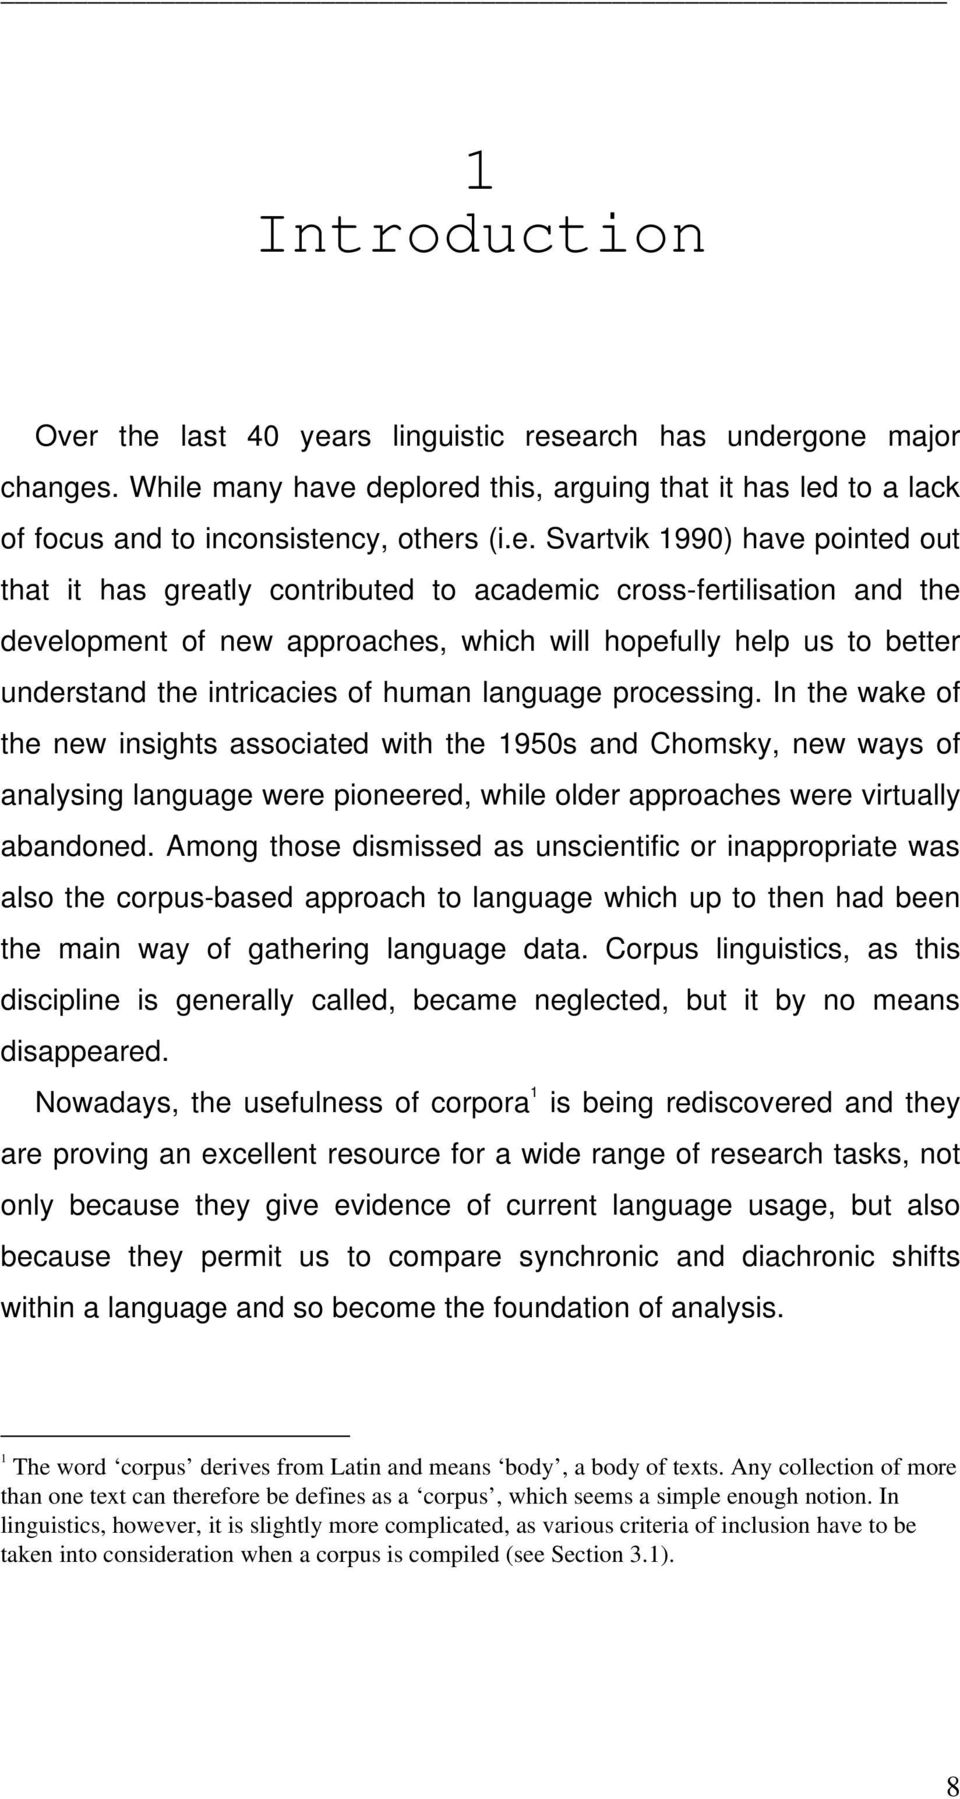 pointed out that it has greatly contributed to academic cross-fertilisation and the development of new approaches, which will hopefully help us to better understand the intricacies of human language